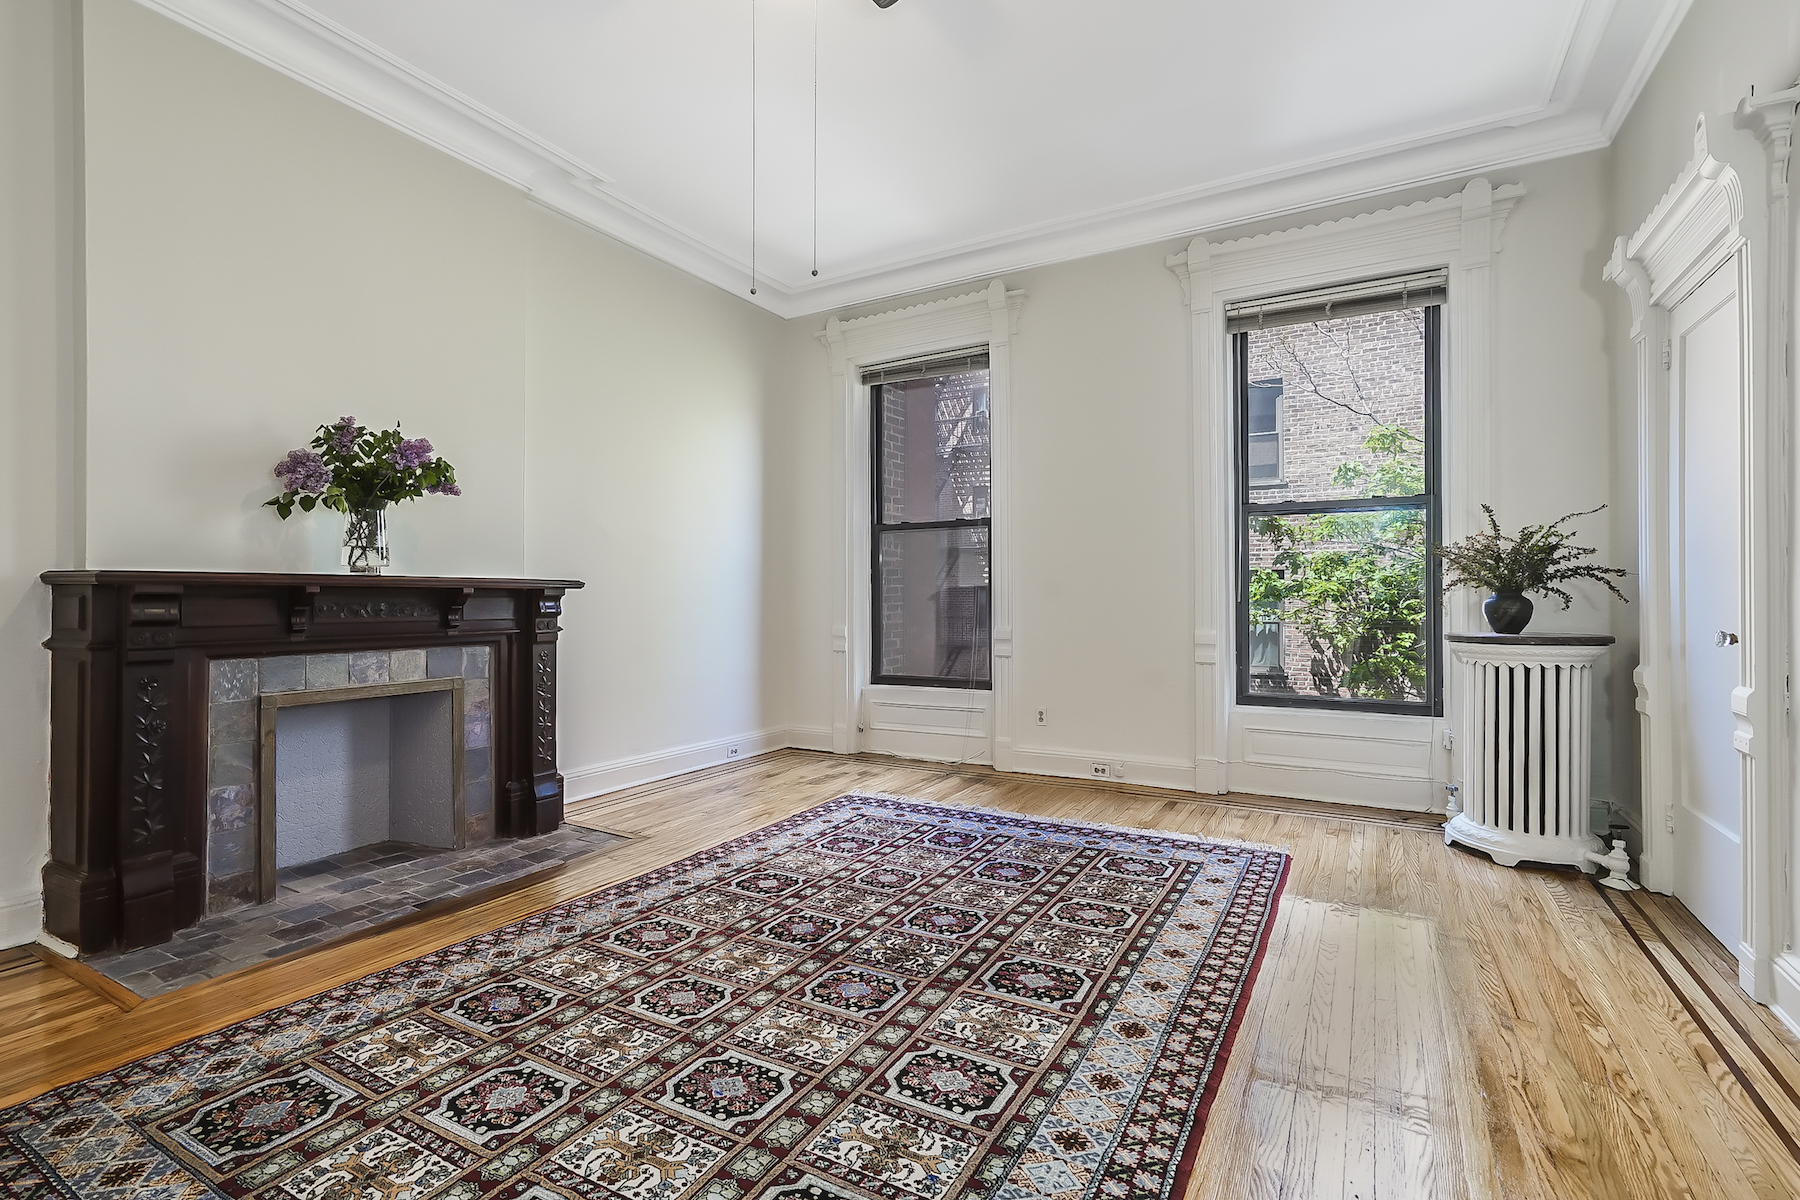 Co-op for Sale at Beautiful One bedroom Co-op in Brownstone 20 8th Avenue Apt. 2-B Brooklyn, New York 11217 United States